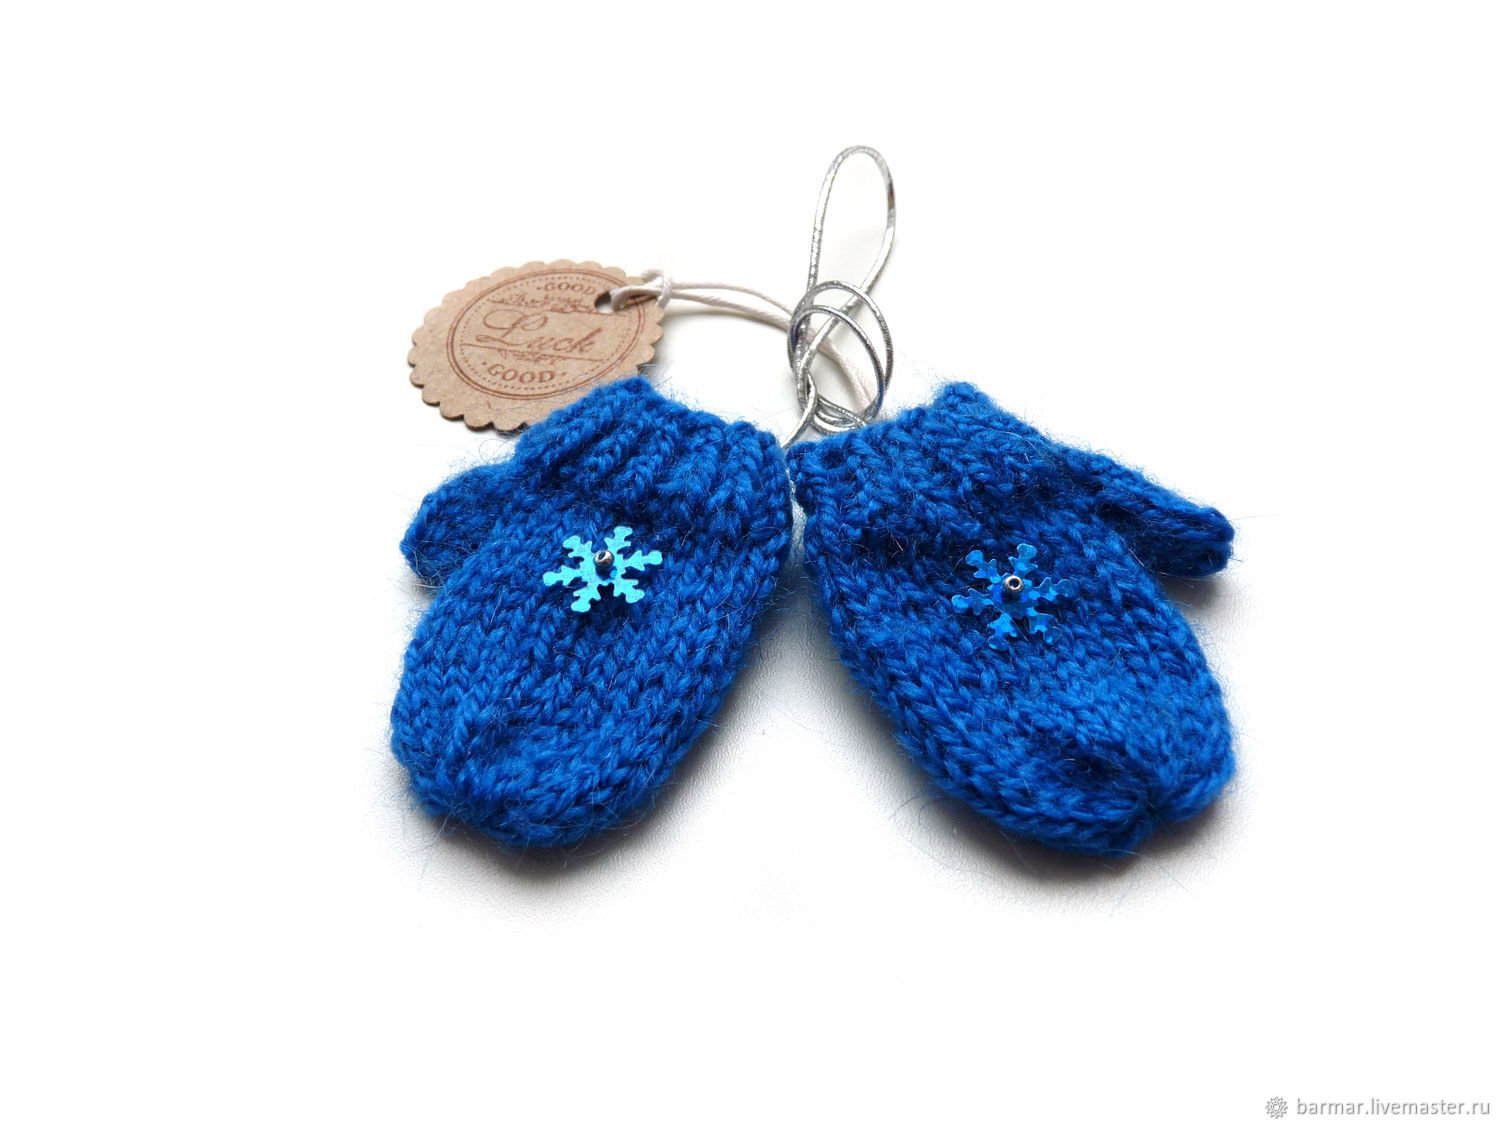 Doll mittens 5 cm knitted blue, Clothes for dolls, Moscow,  Фото №1